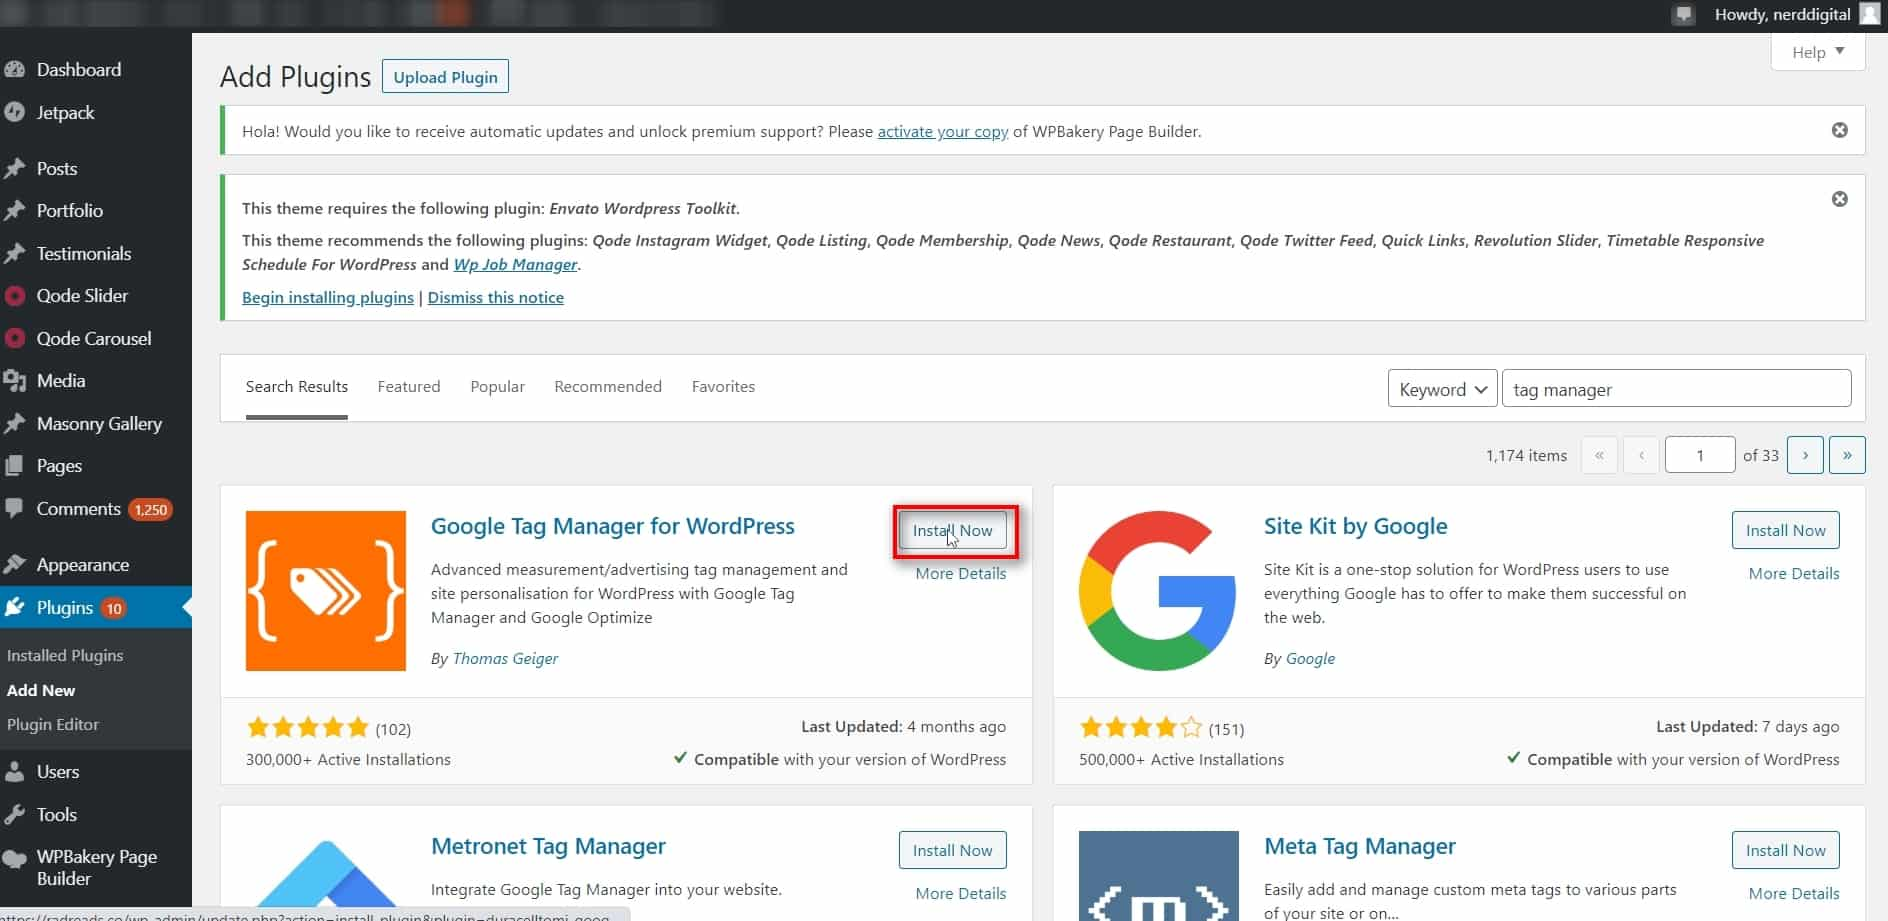 Install Google Tag Manager Plugin Log into WordPress Go to Plugins/Add New Search for tag manager Install the Google Tag Manager for WordPress by Thomas Geiger Activat plugin